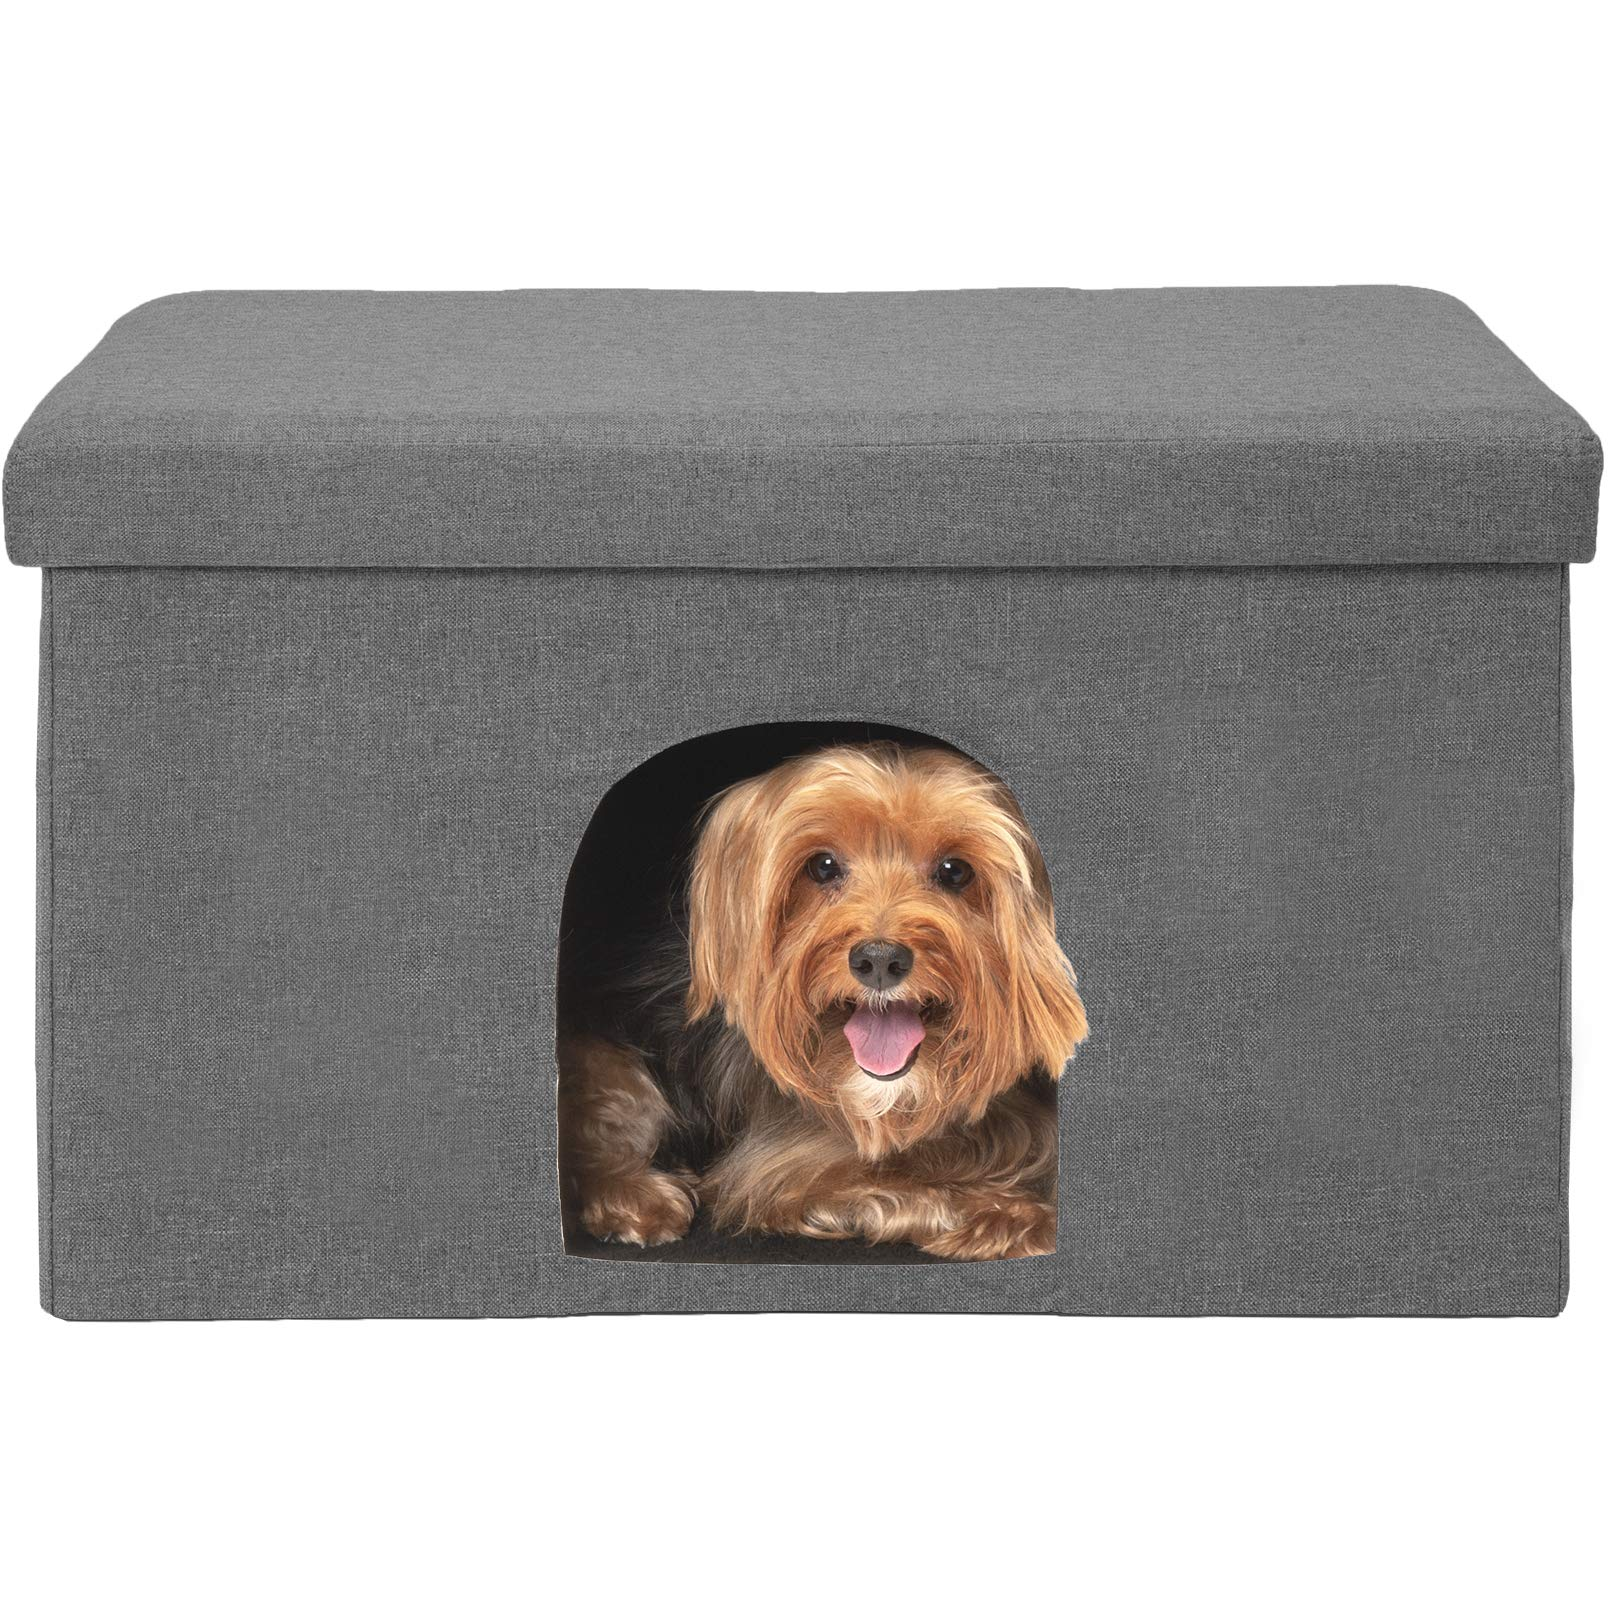 FurHaven Pet House | Footstool Ottoman Pet House for Dogs & Cats, Stormy Gray, Large